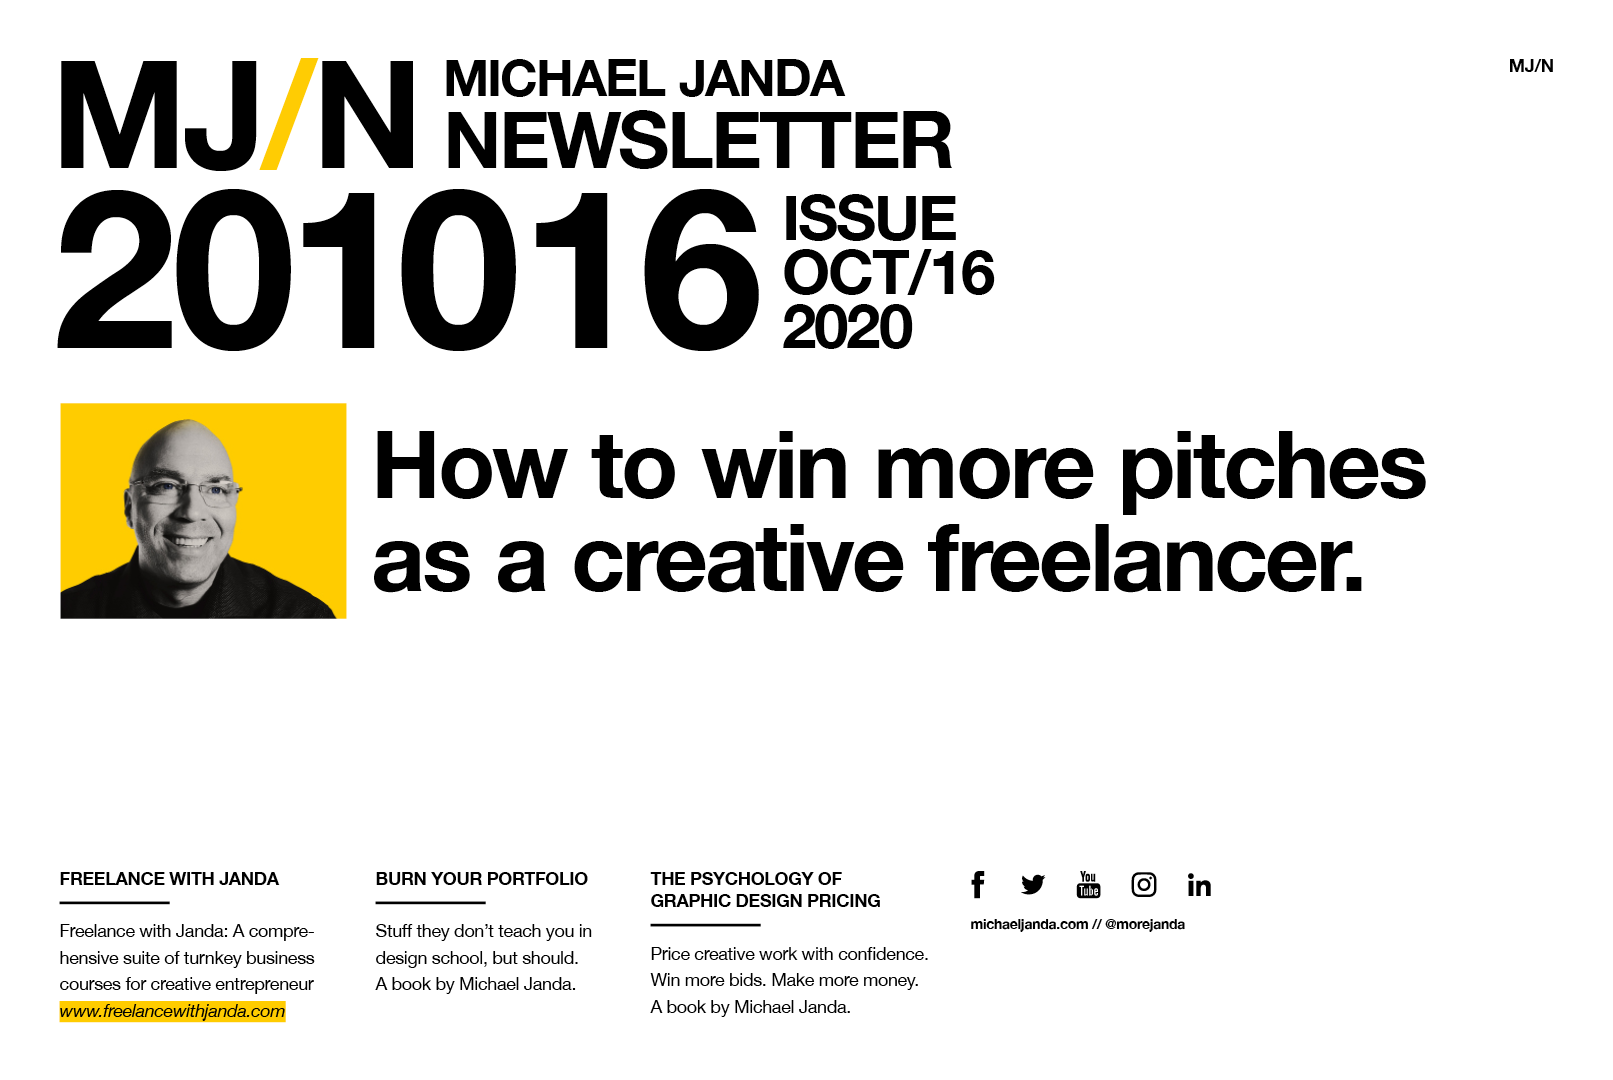 How to win more pitches as a creative freelancer.